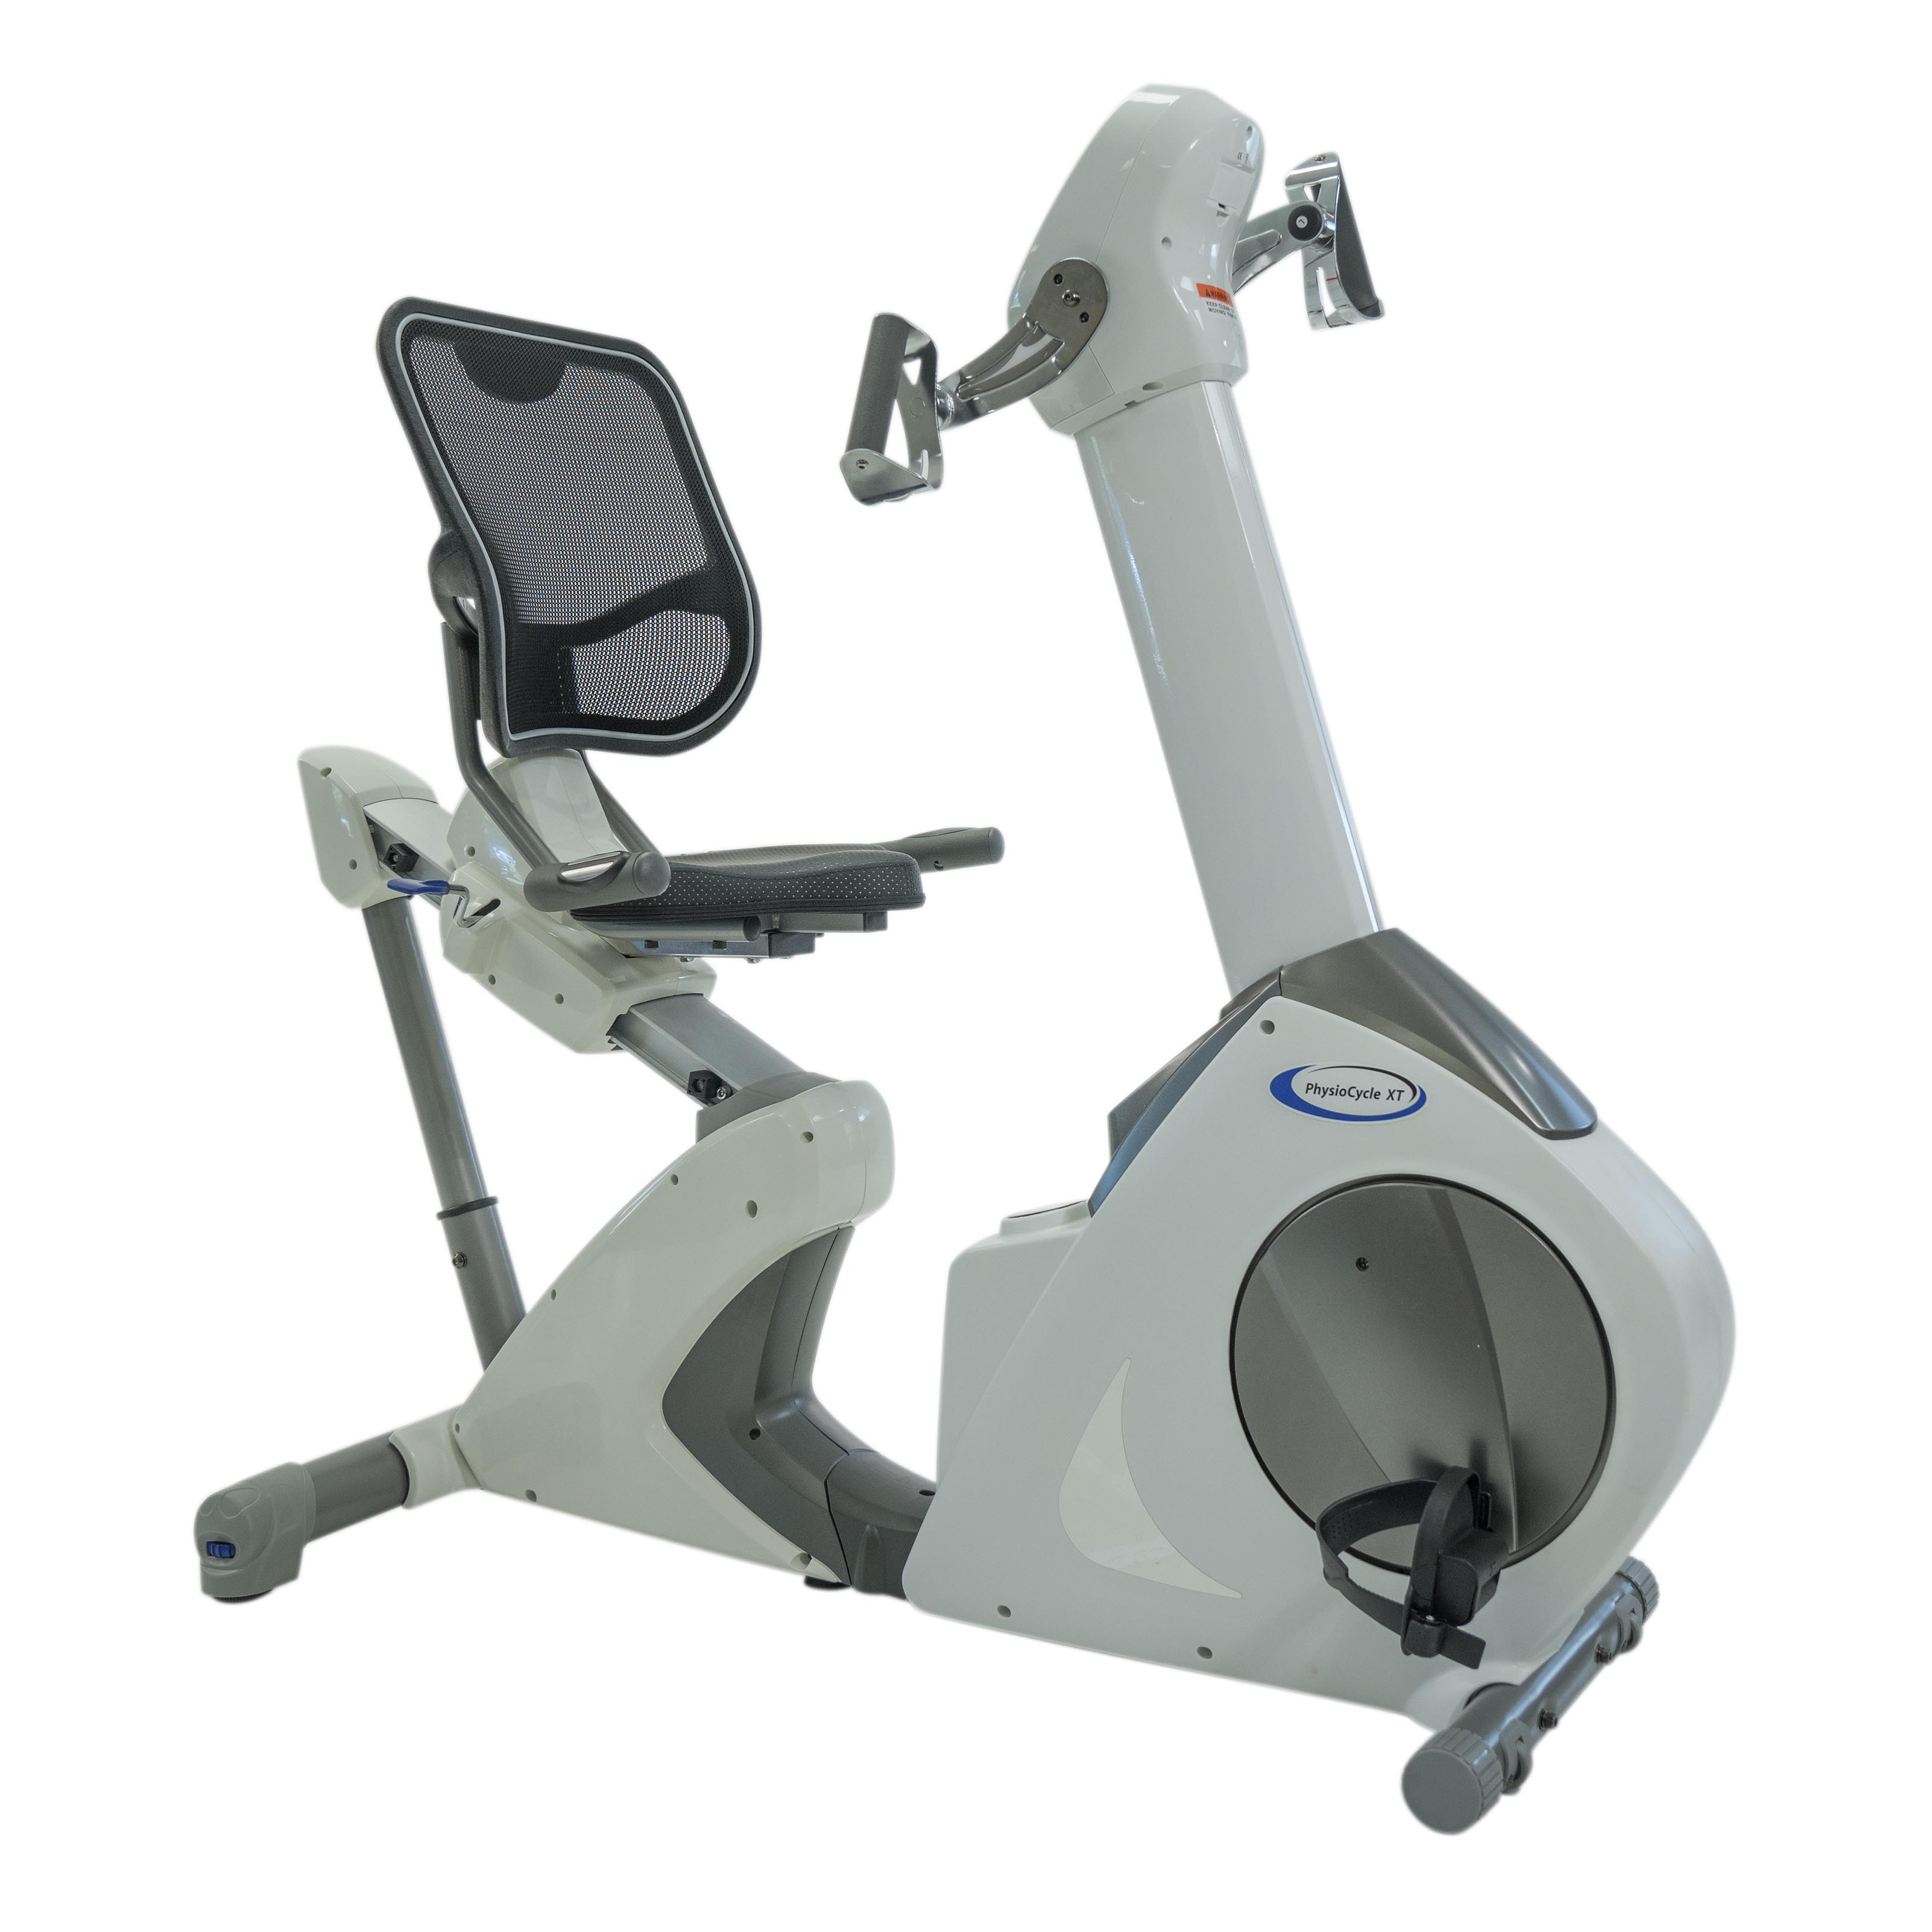 PhysioCycle XT Physical Therapy Recumbent Bike w/ Upper Body Ergometer (Commercial Grade Quality) by HCI